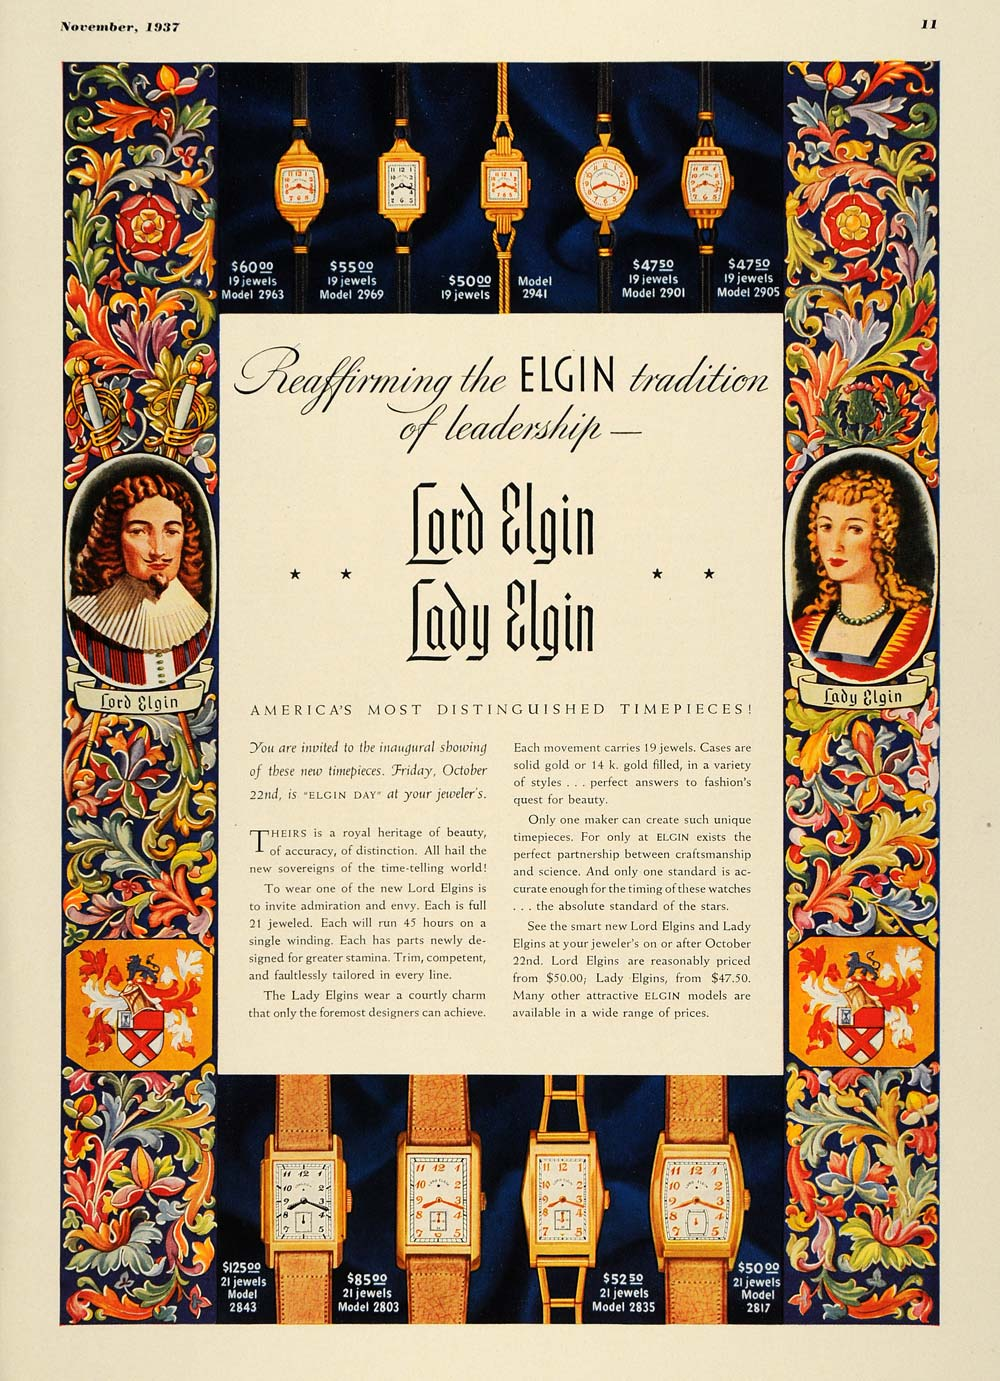 1937 Ad Lord Lady Elgin Watches 19 & 21Jewels Models - ORIGINAL ADVERTISING ESQ2